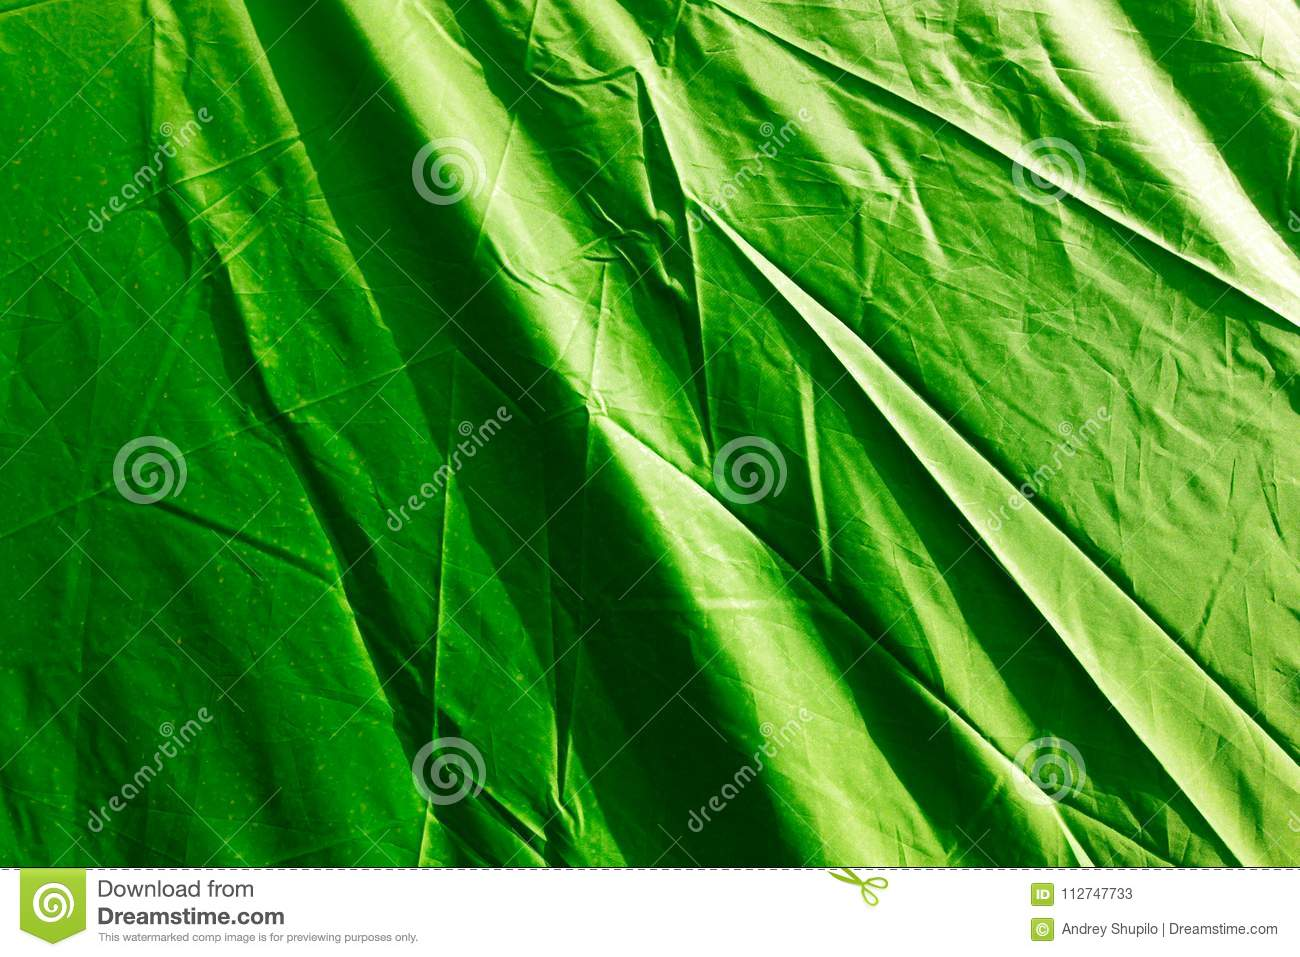 Green Awning As A Background Stock Image - Image of ...